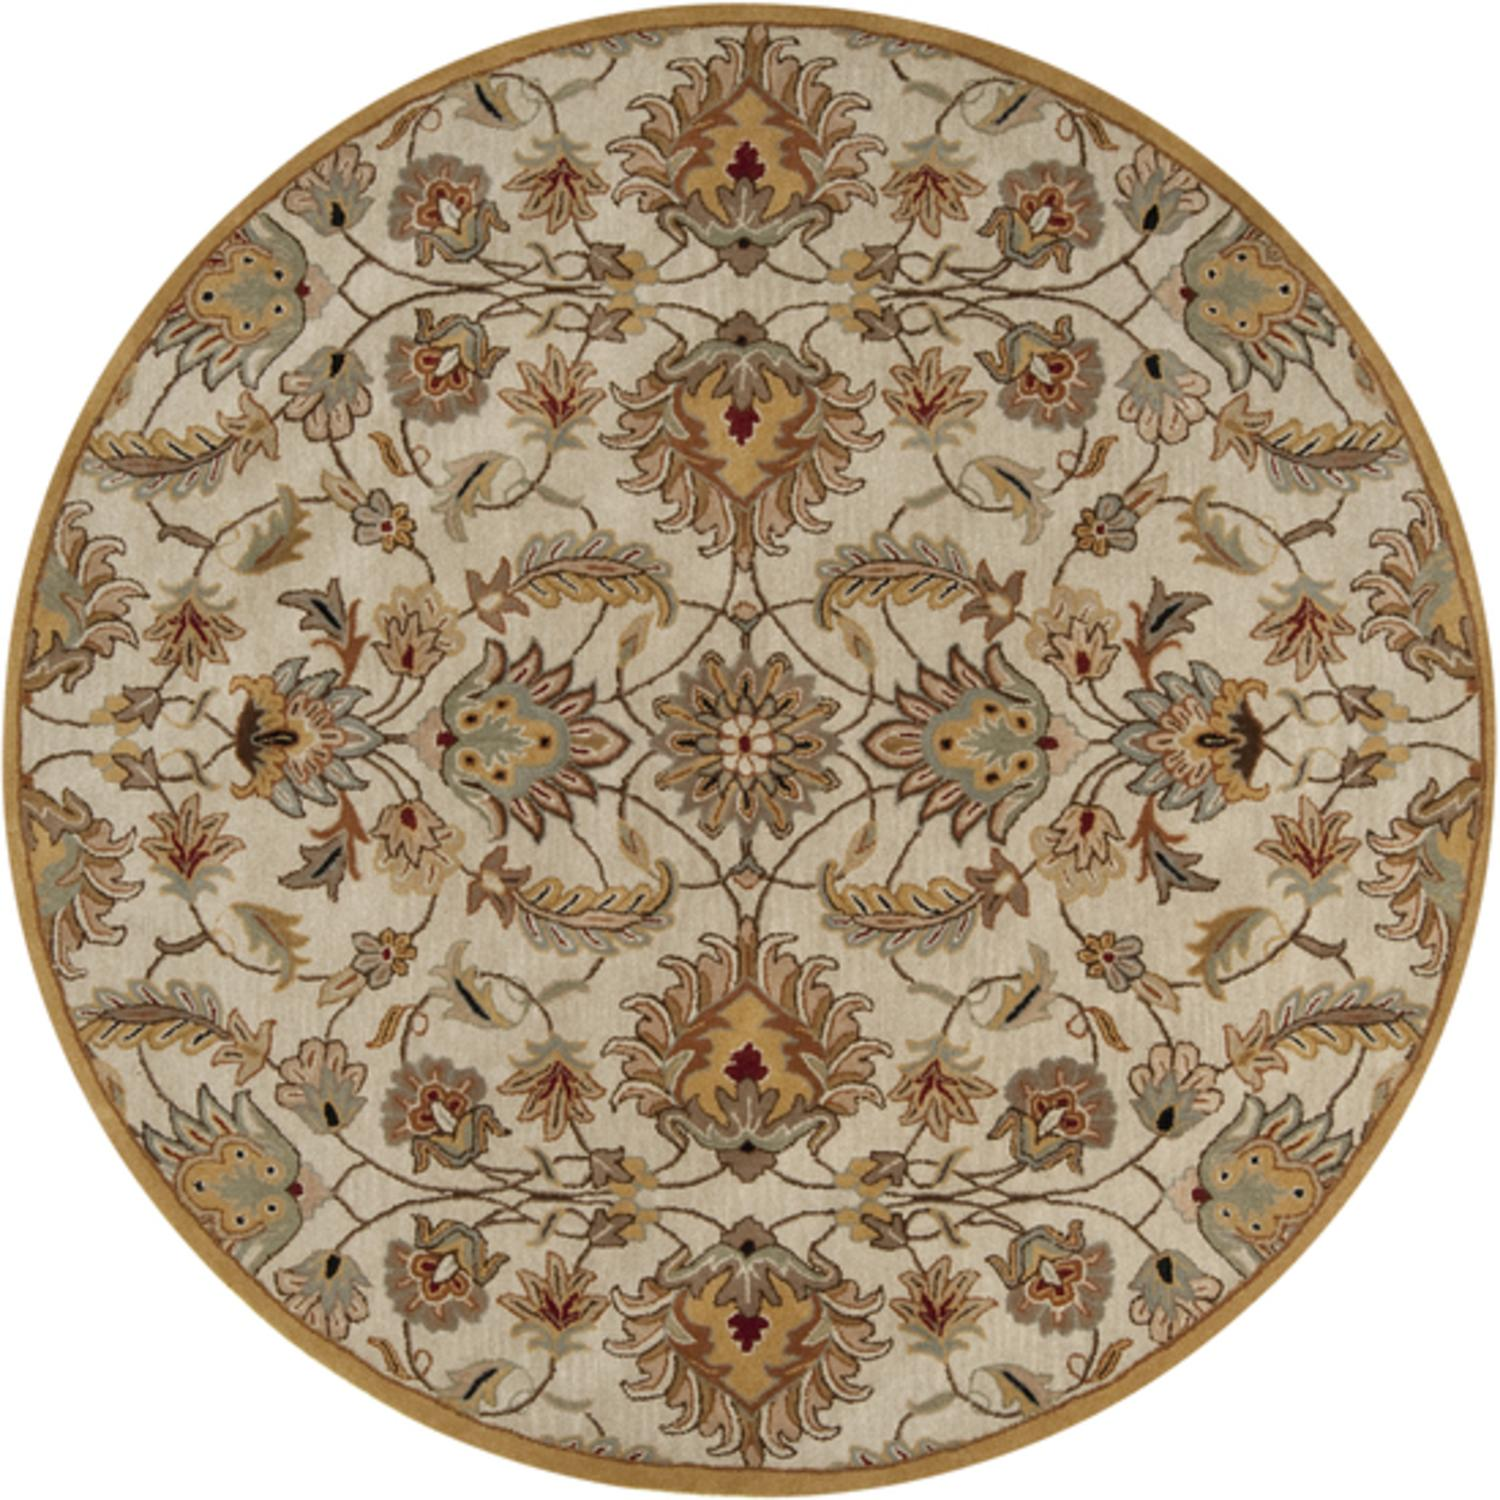 9.75' Alexandria Caramel Tan & Silver Gray Hand Tufted Round Wool Area Throw Rug